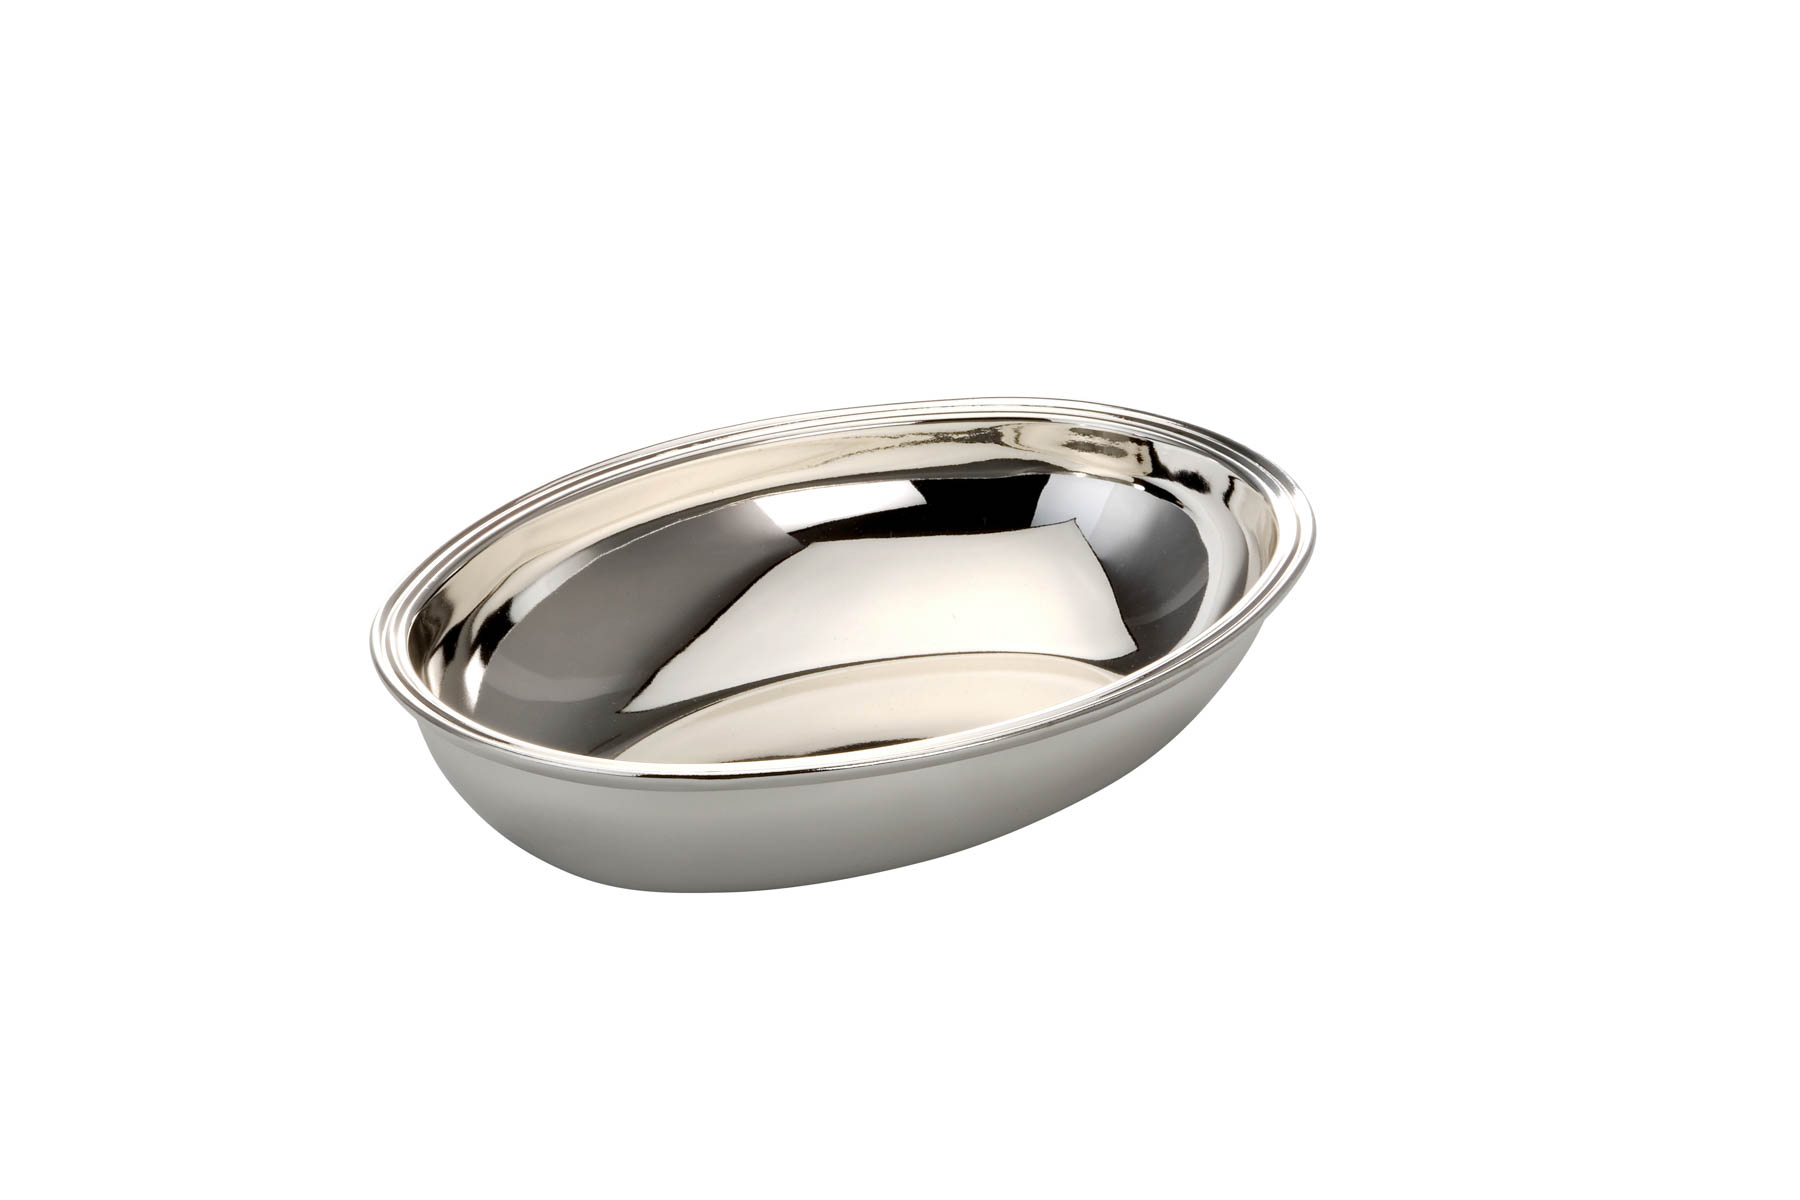 Bowl oval, plain